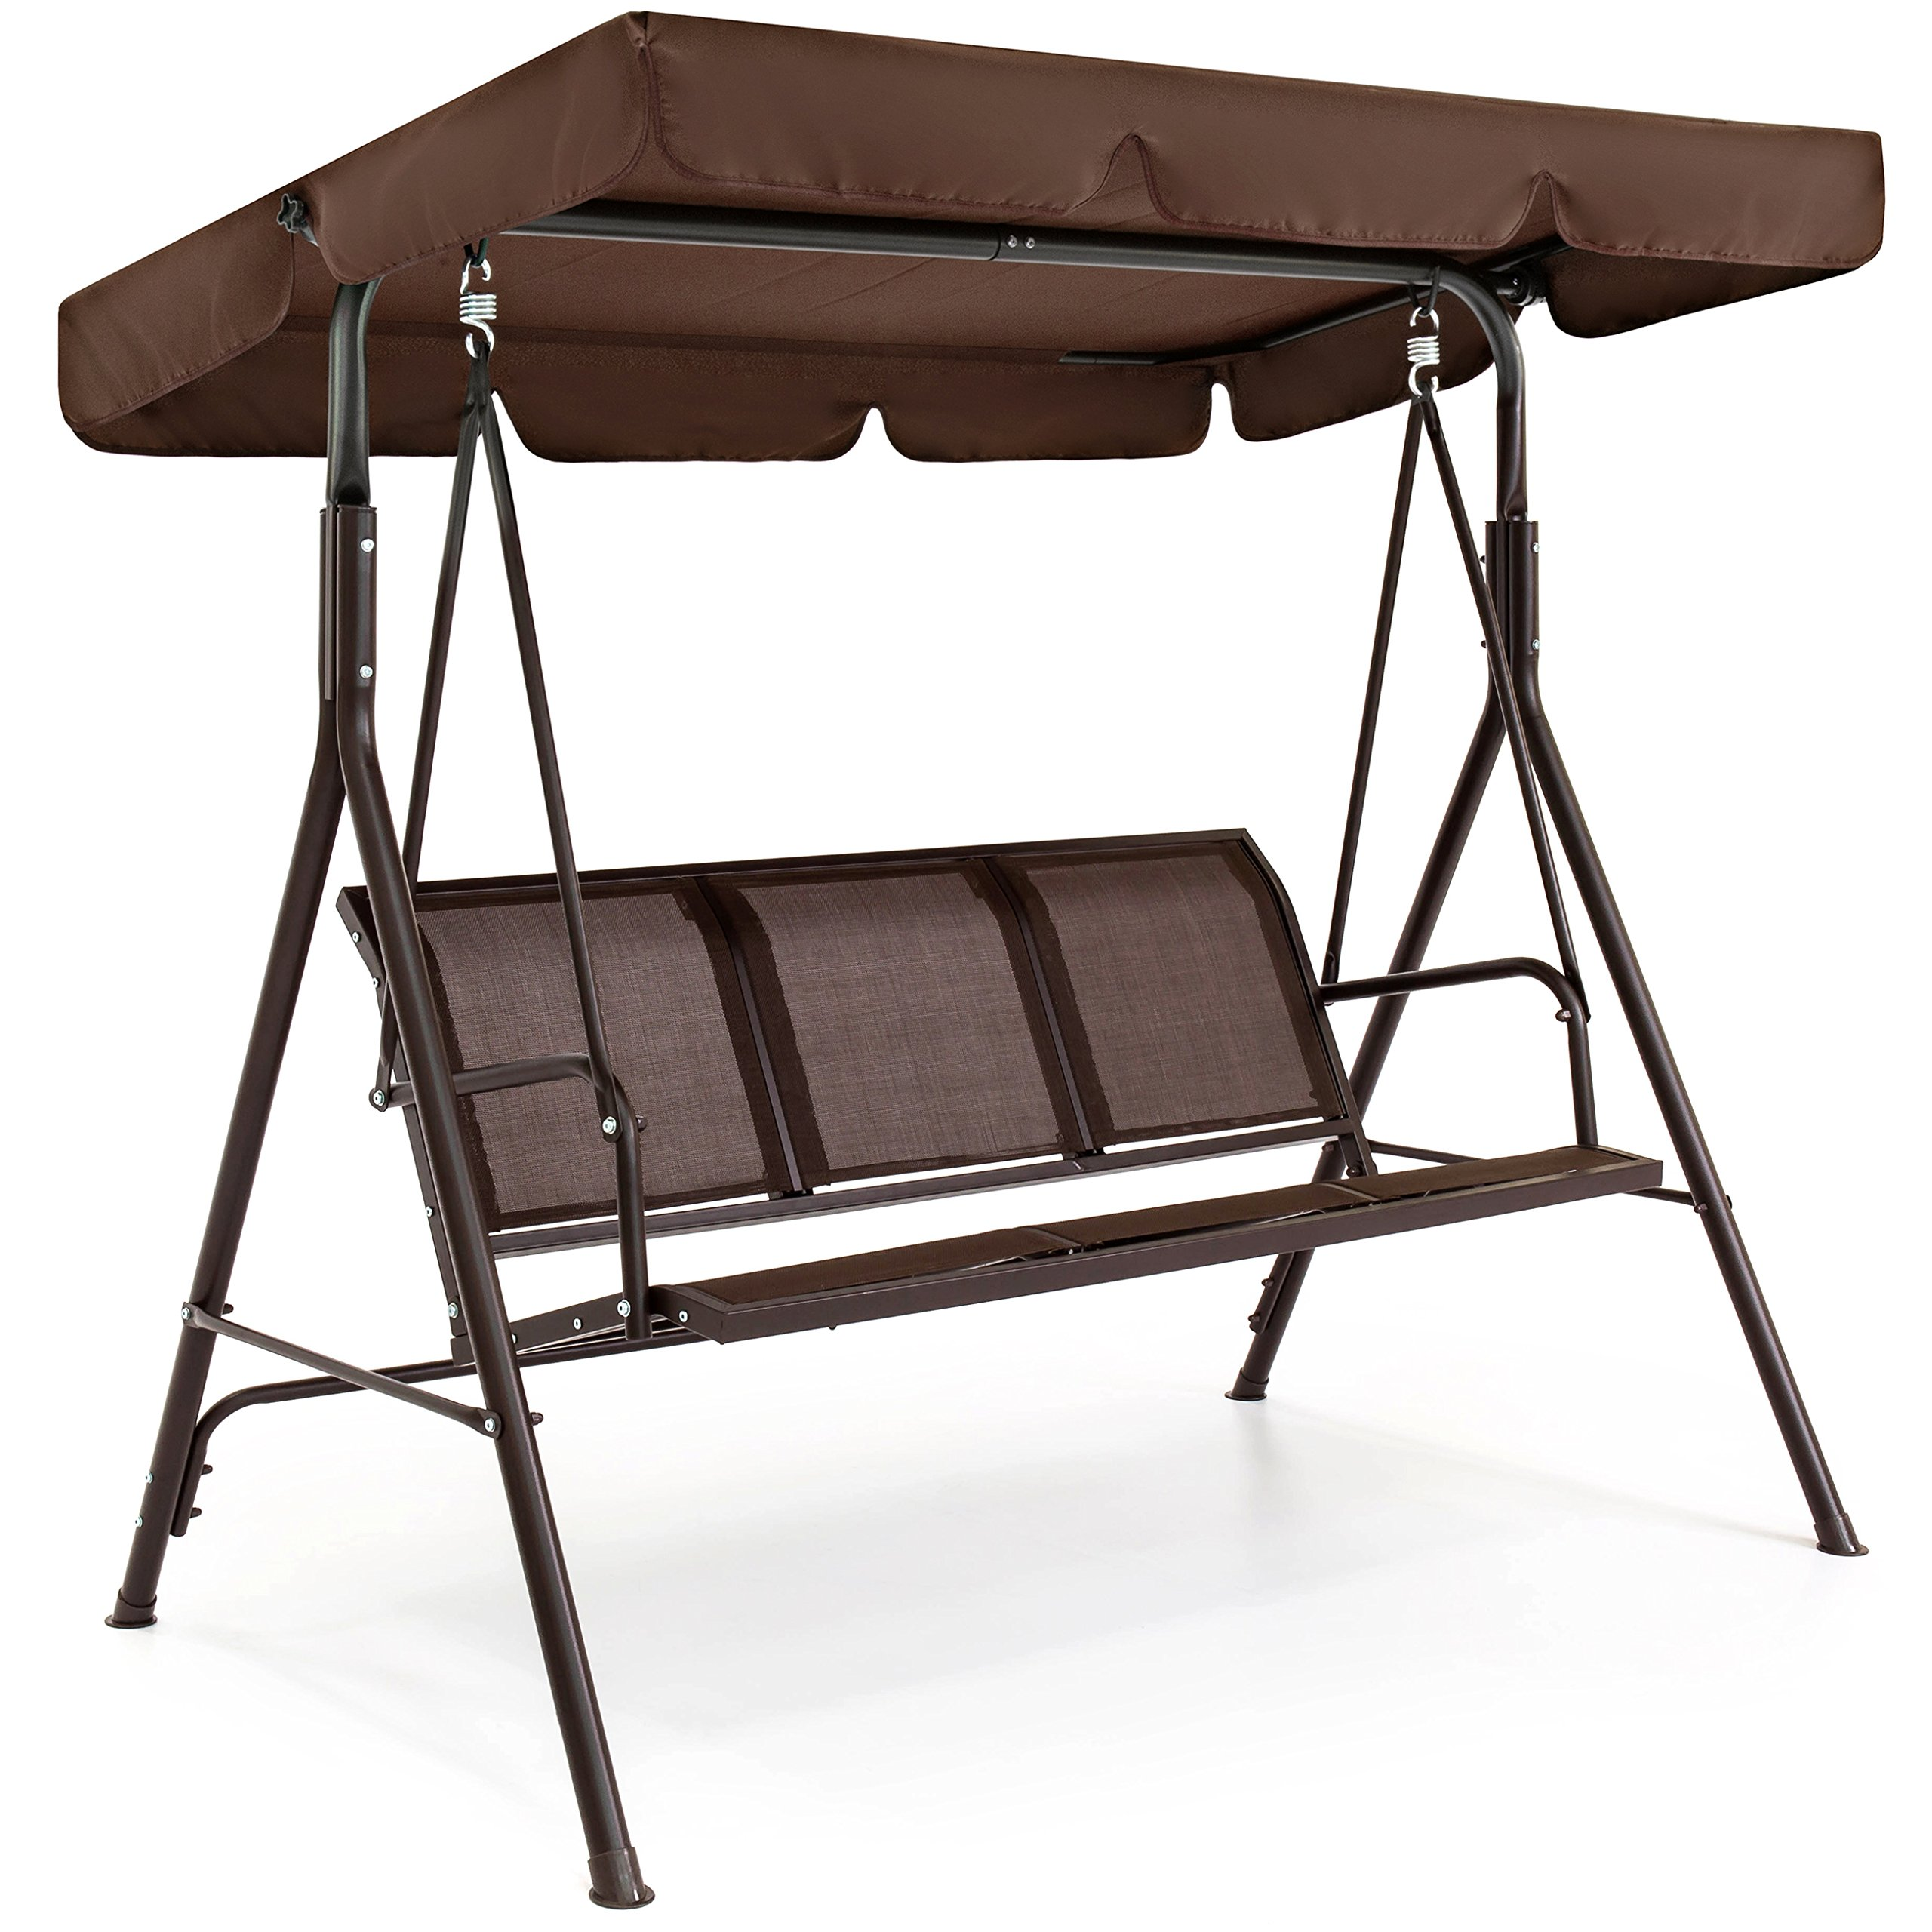 Best Choice Products 3-Person Outdoor Convertible Canopy Swing Chair Bench w/Weather Resistant Powder Finish - Brown